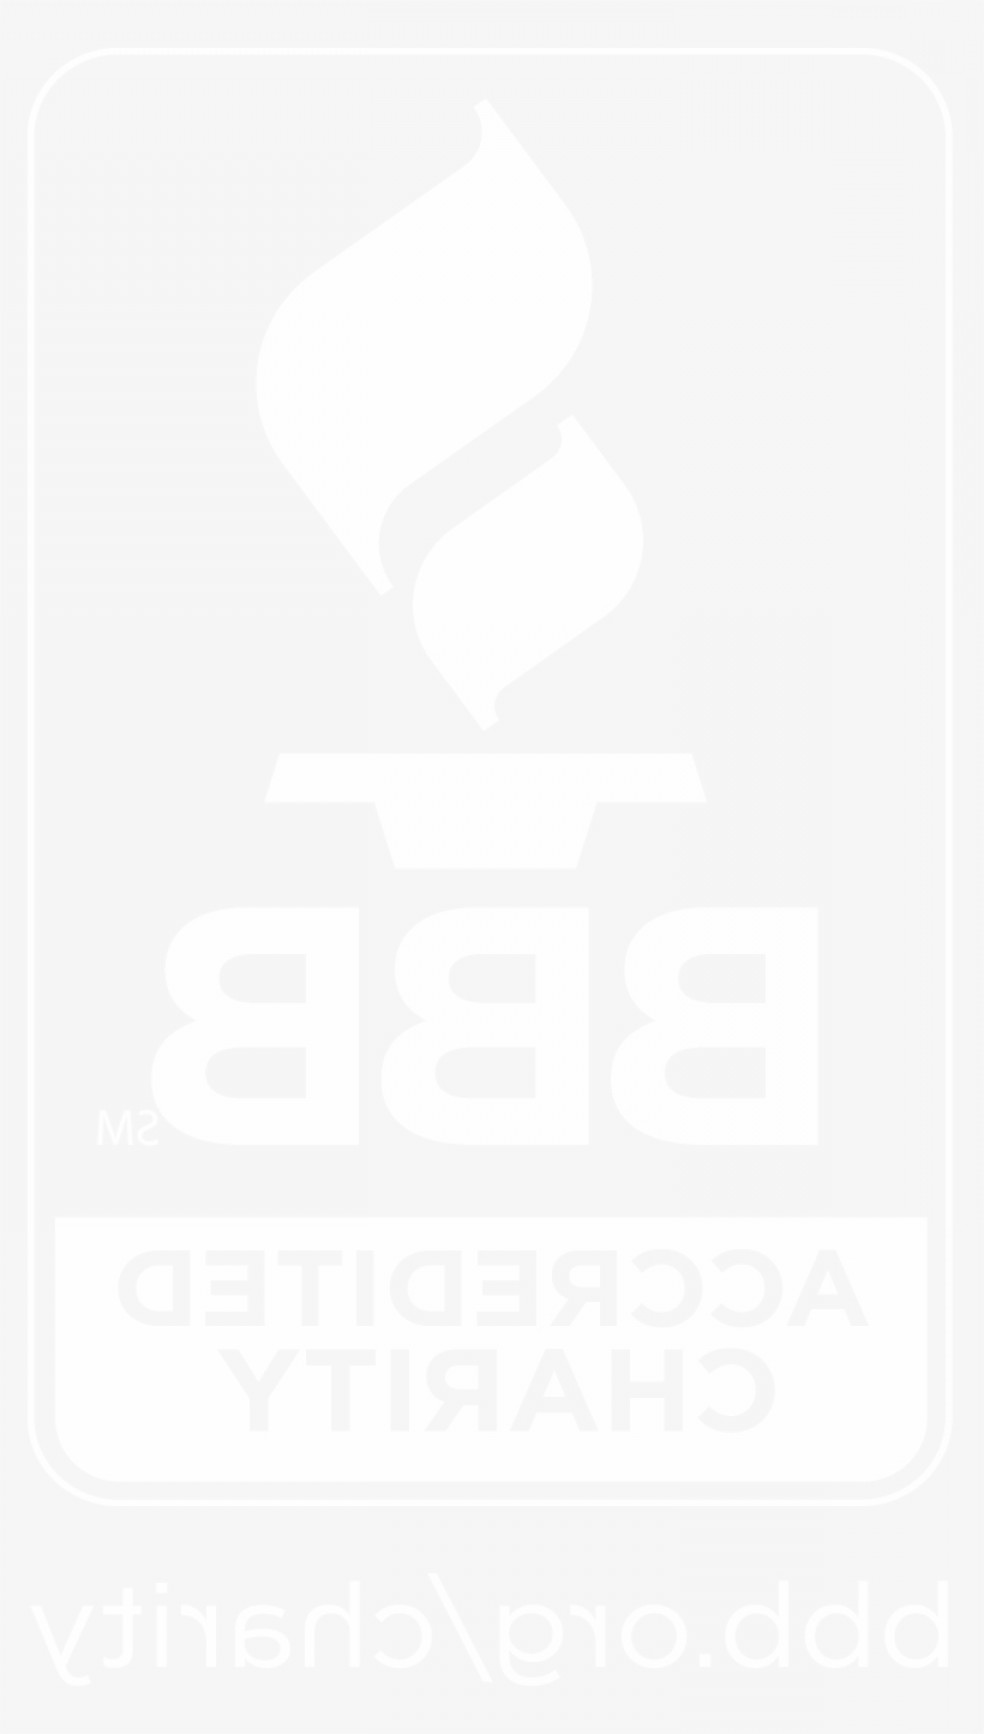 BBB Accredited Logo Vector: Uqqeqeercystic Fibrosis Foundation Cf Better Business Bureau Bbb